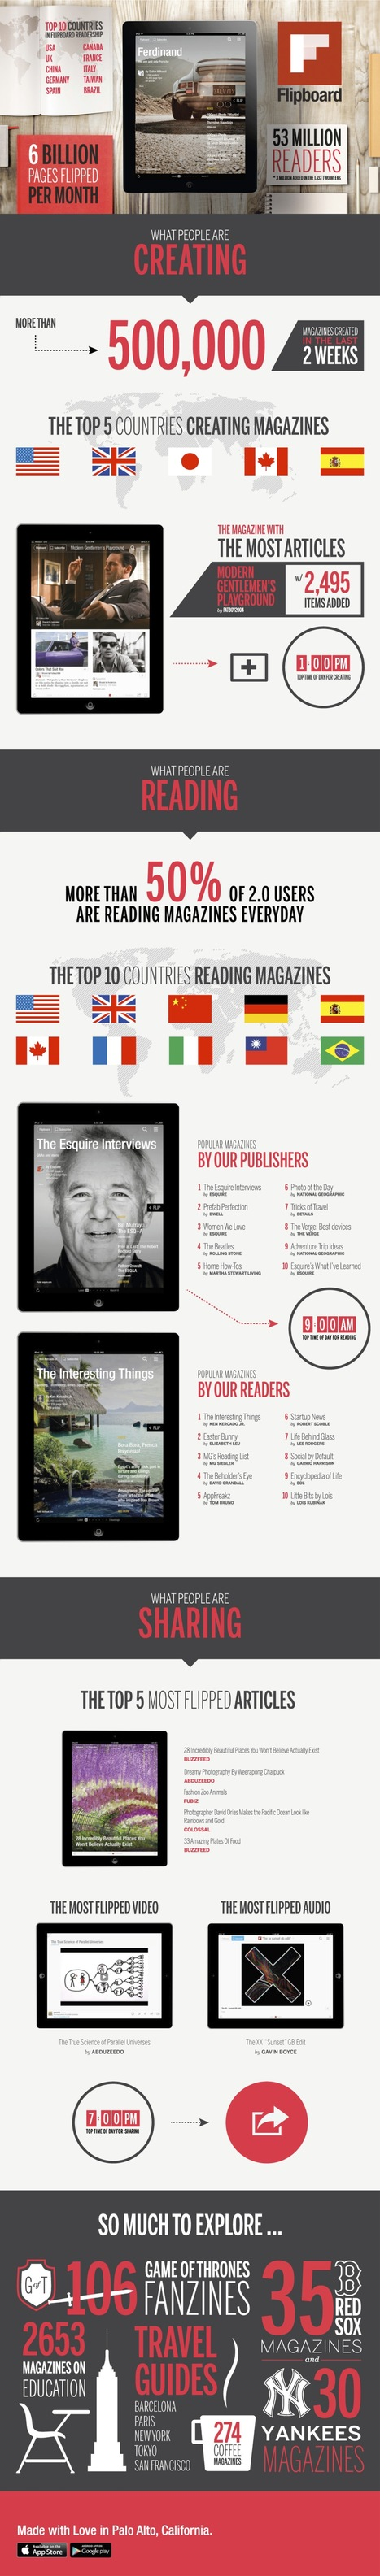 500,000 Flipboard magazines created in 2 weeks ... | Webortash | Scoop.it